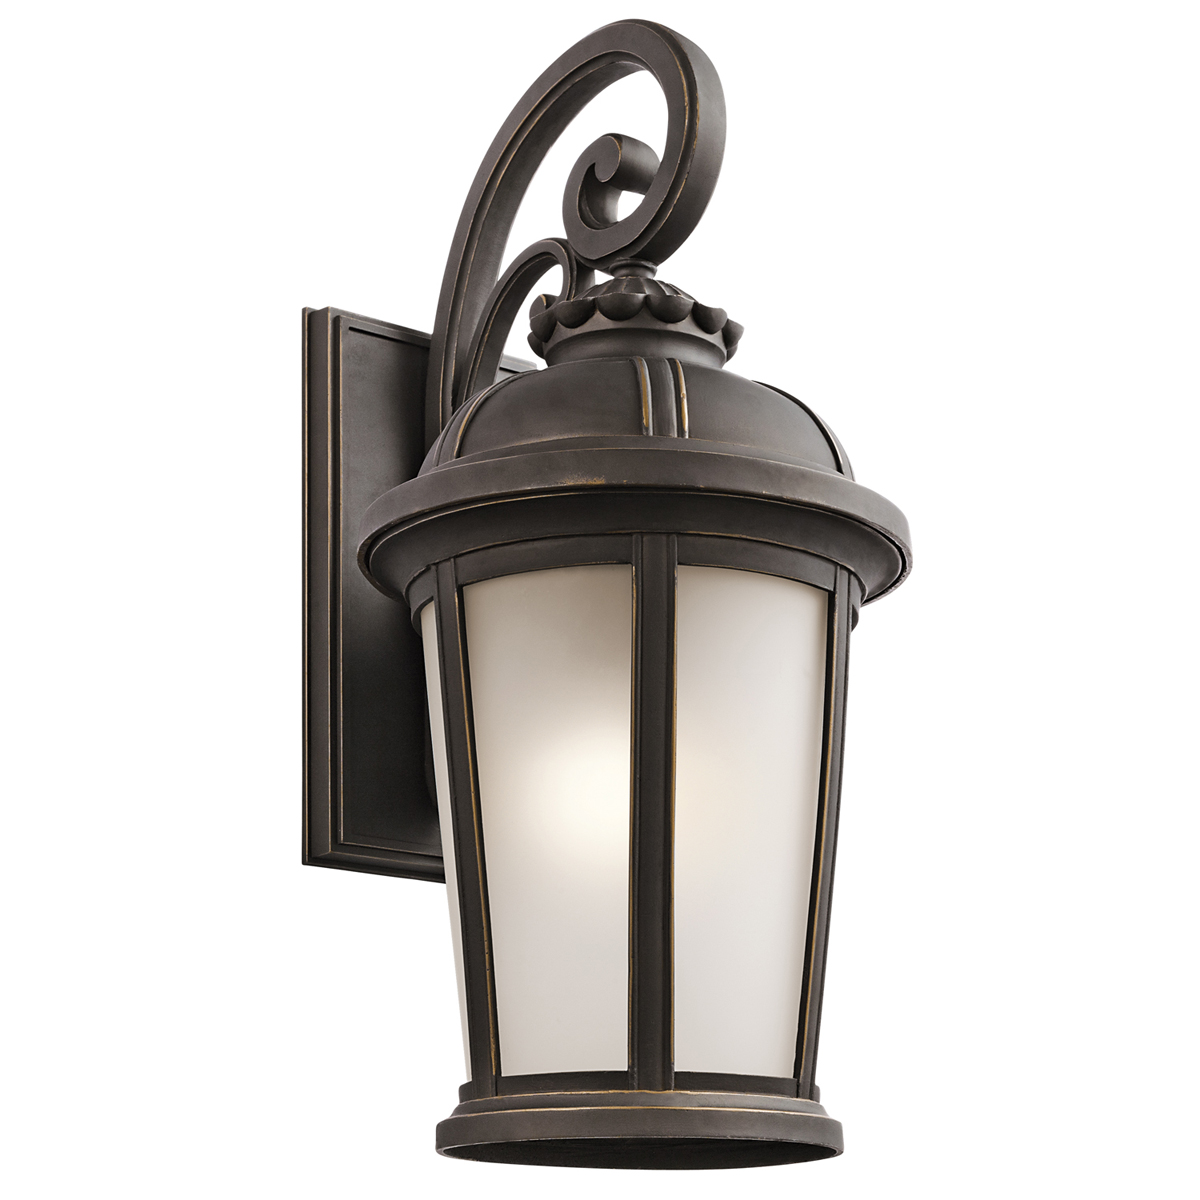 Kichler Exterior Wall Sconces : Kichler Lighting (49414RZ) Ralston 1-Light X-Large Outdoor Wall Sconce in Rubbed Bronze